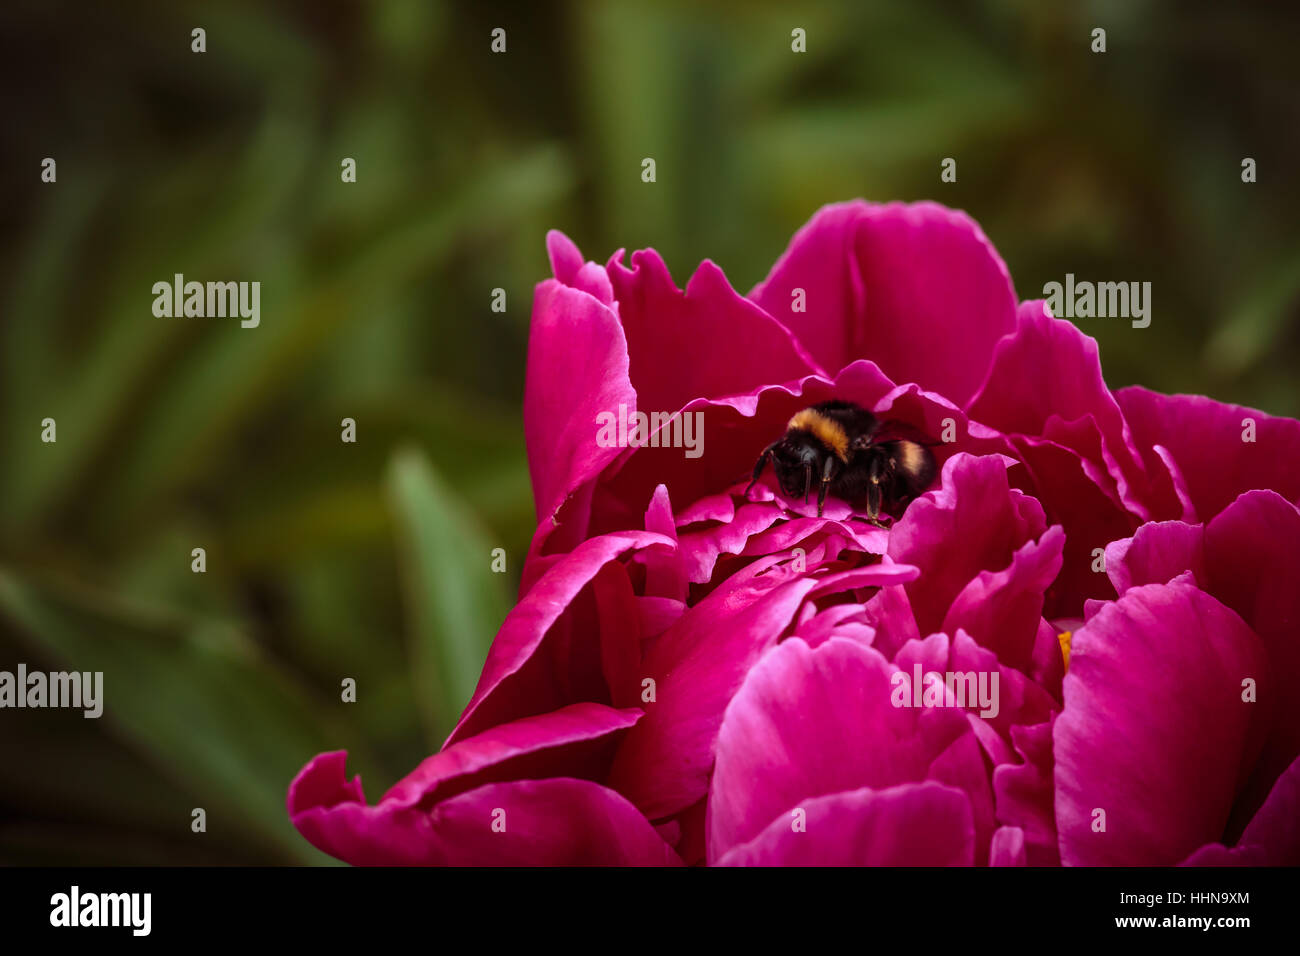 One ordinary bumblebee in pink peonies on background Stock Photo